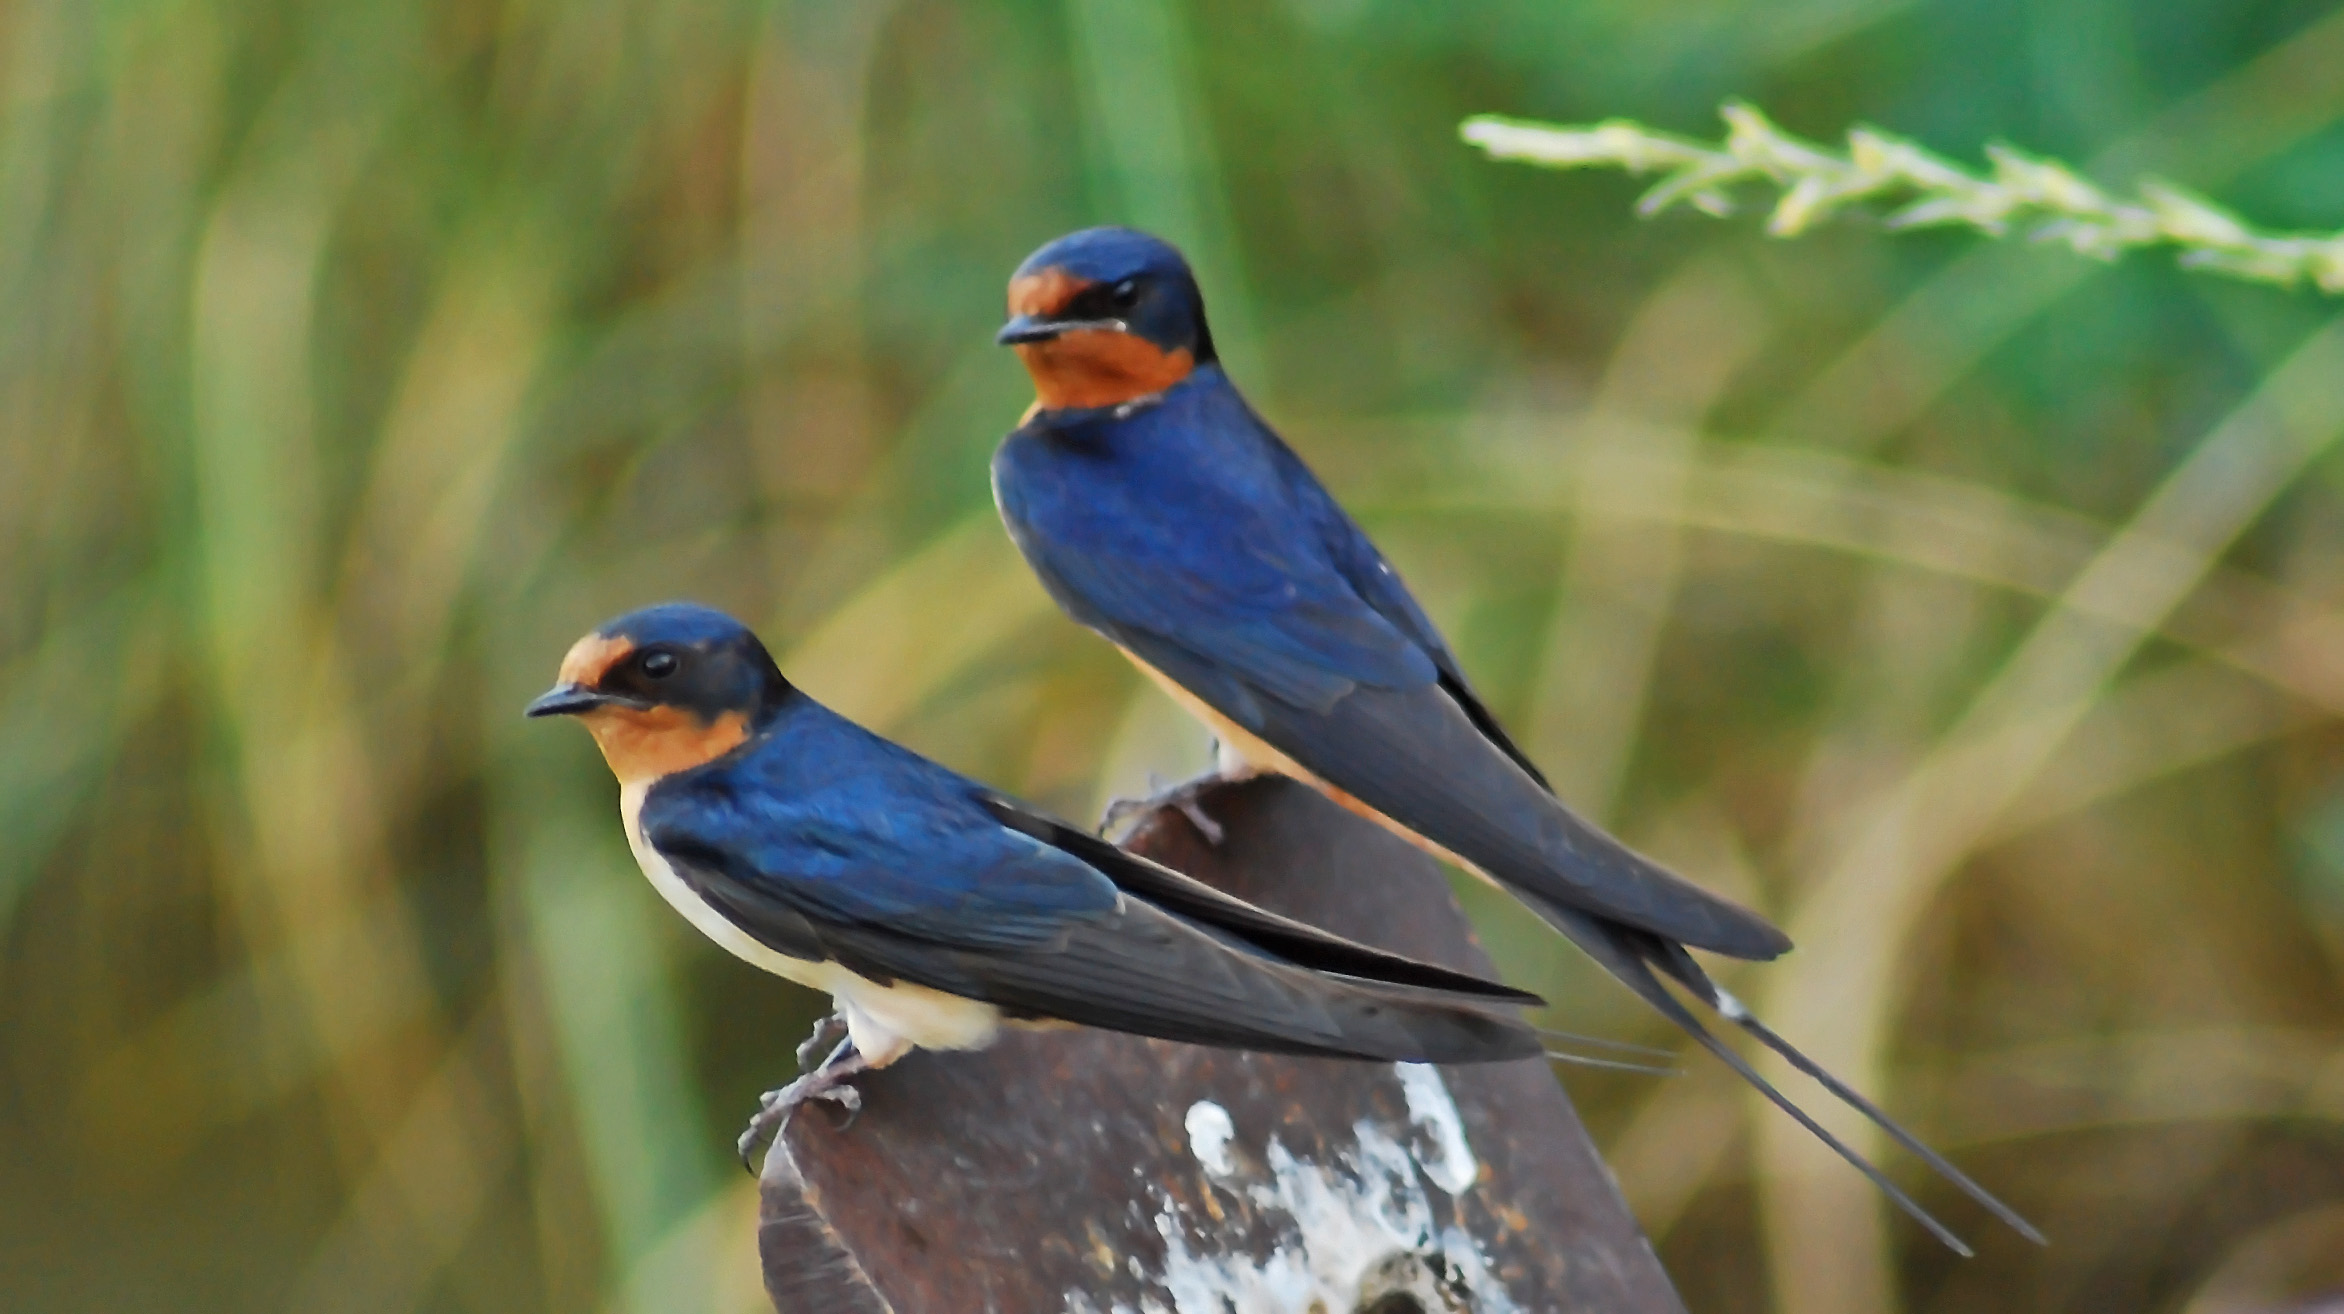 Two Barn Swallows